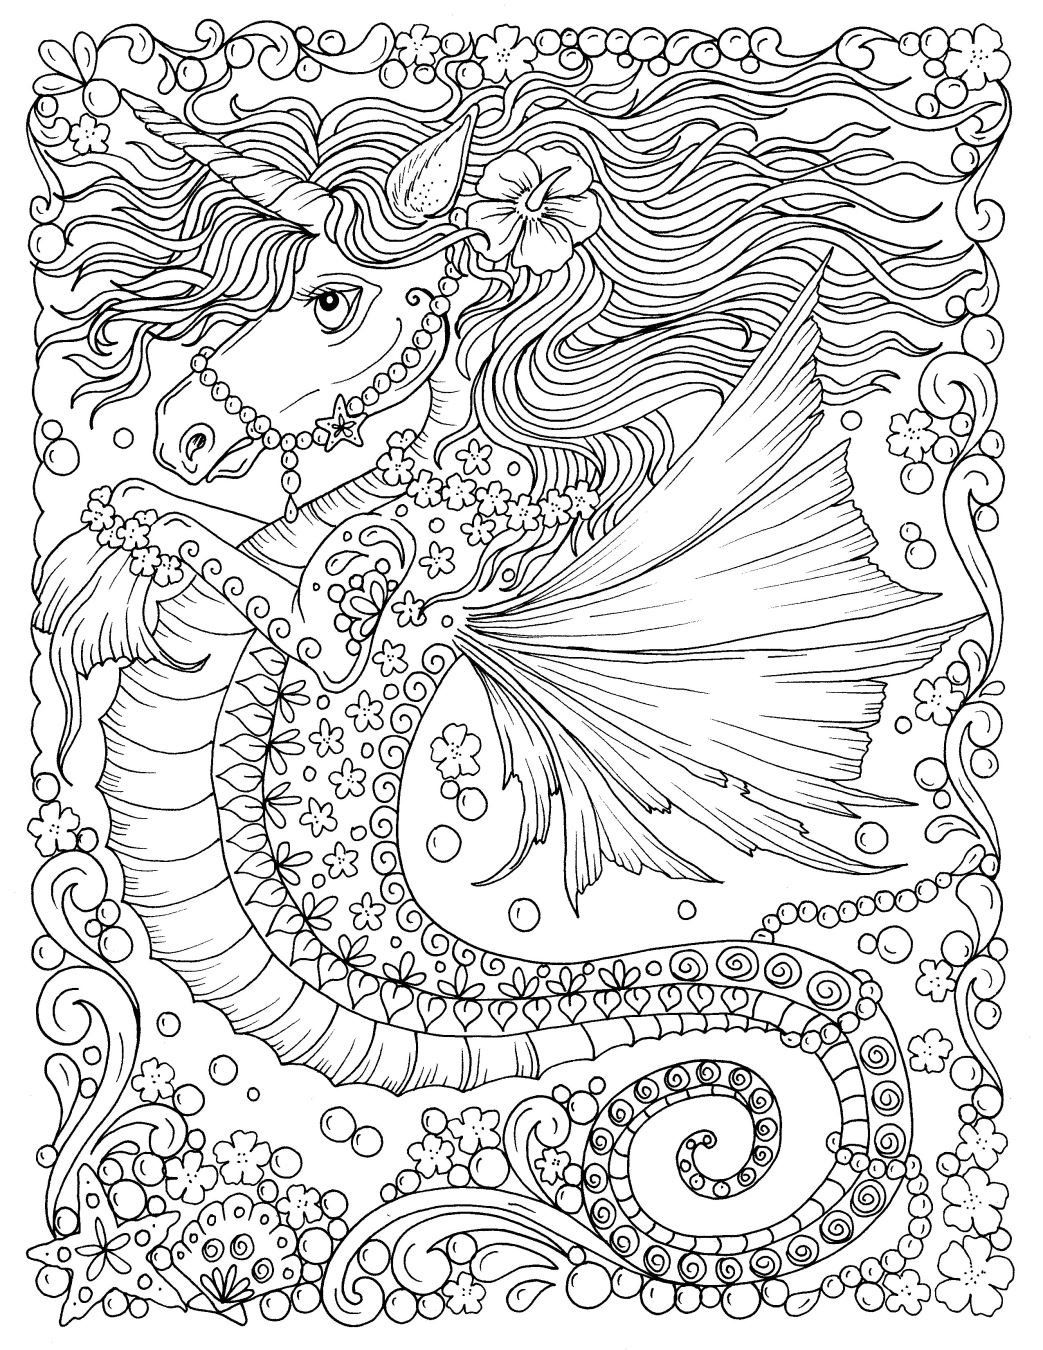 Adult Colouring Book 40 Pages Art Therapy Geometric Enchanted Forest Relax A4